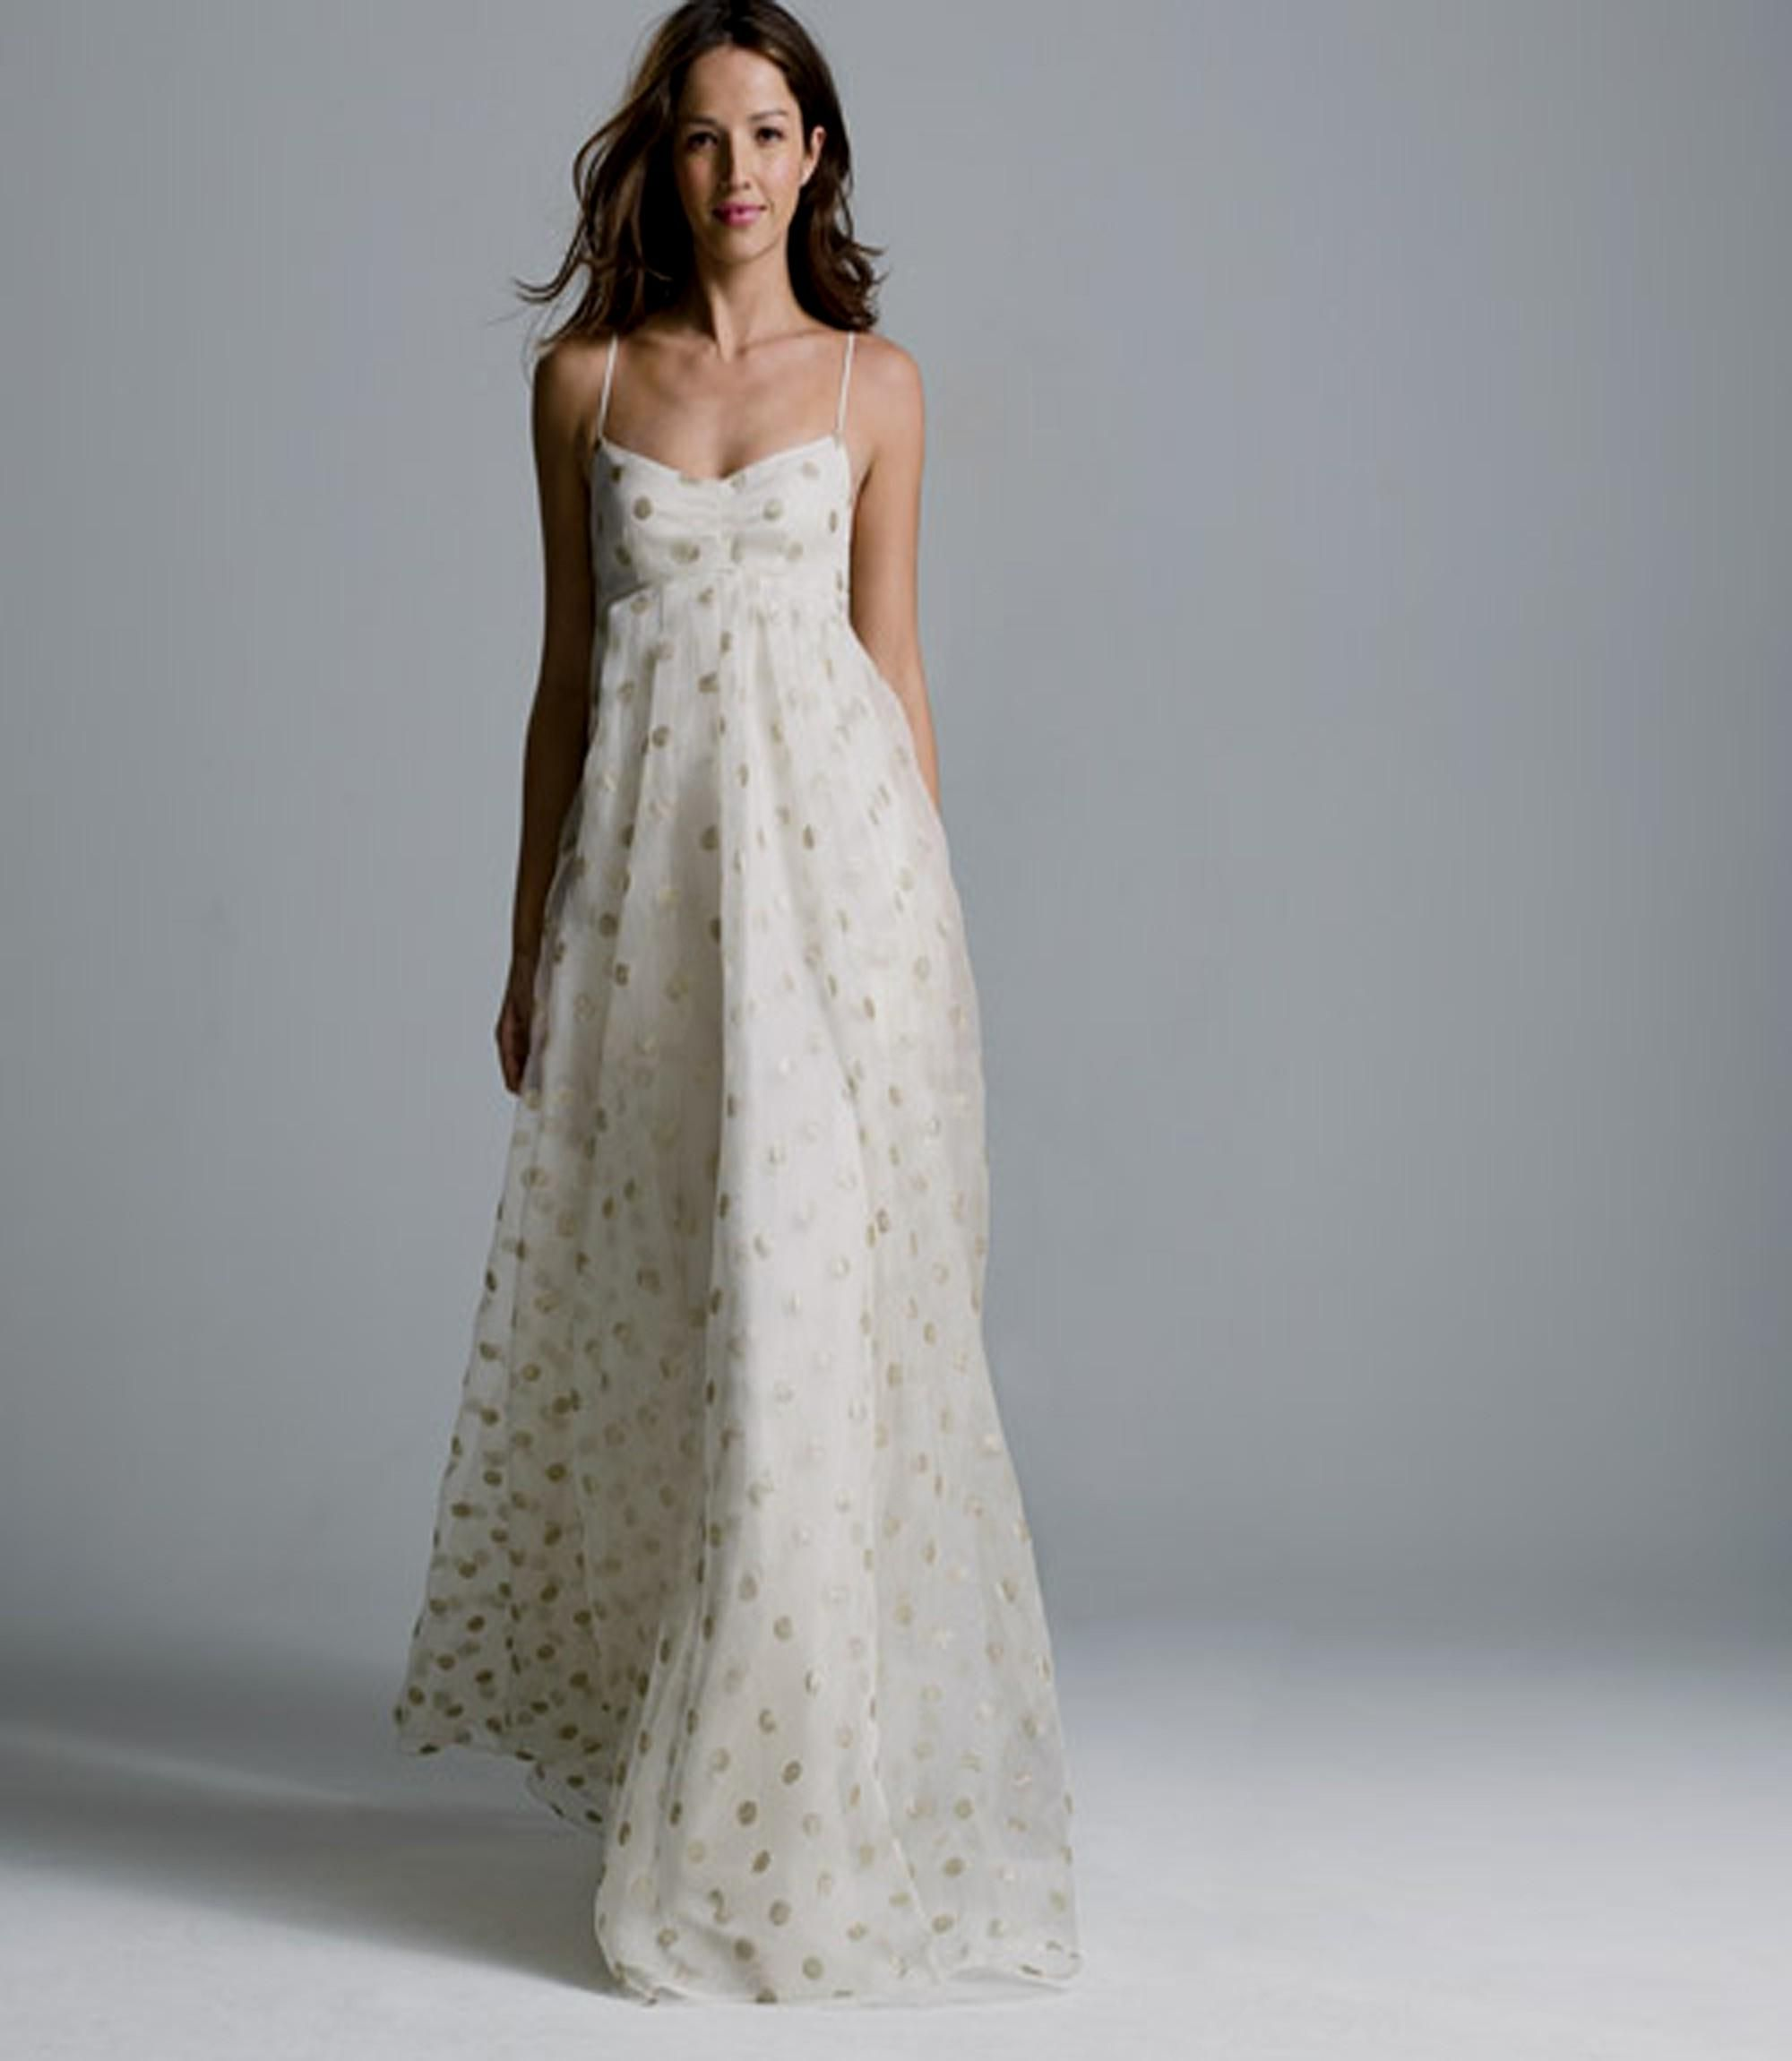 Casual Beach Wedding Dresses For Older Brides